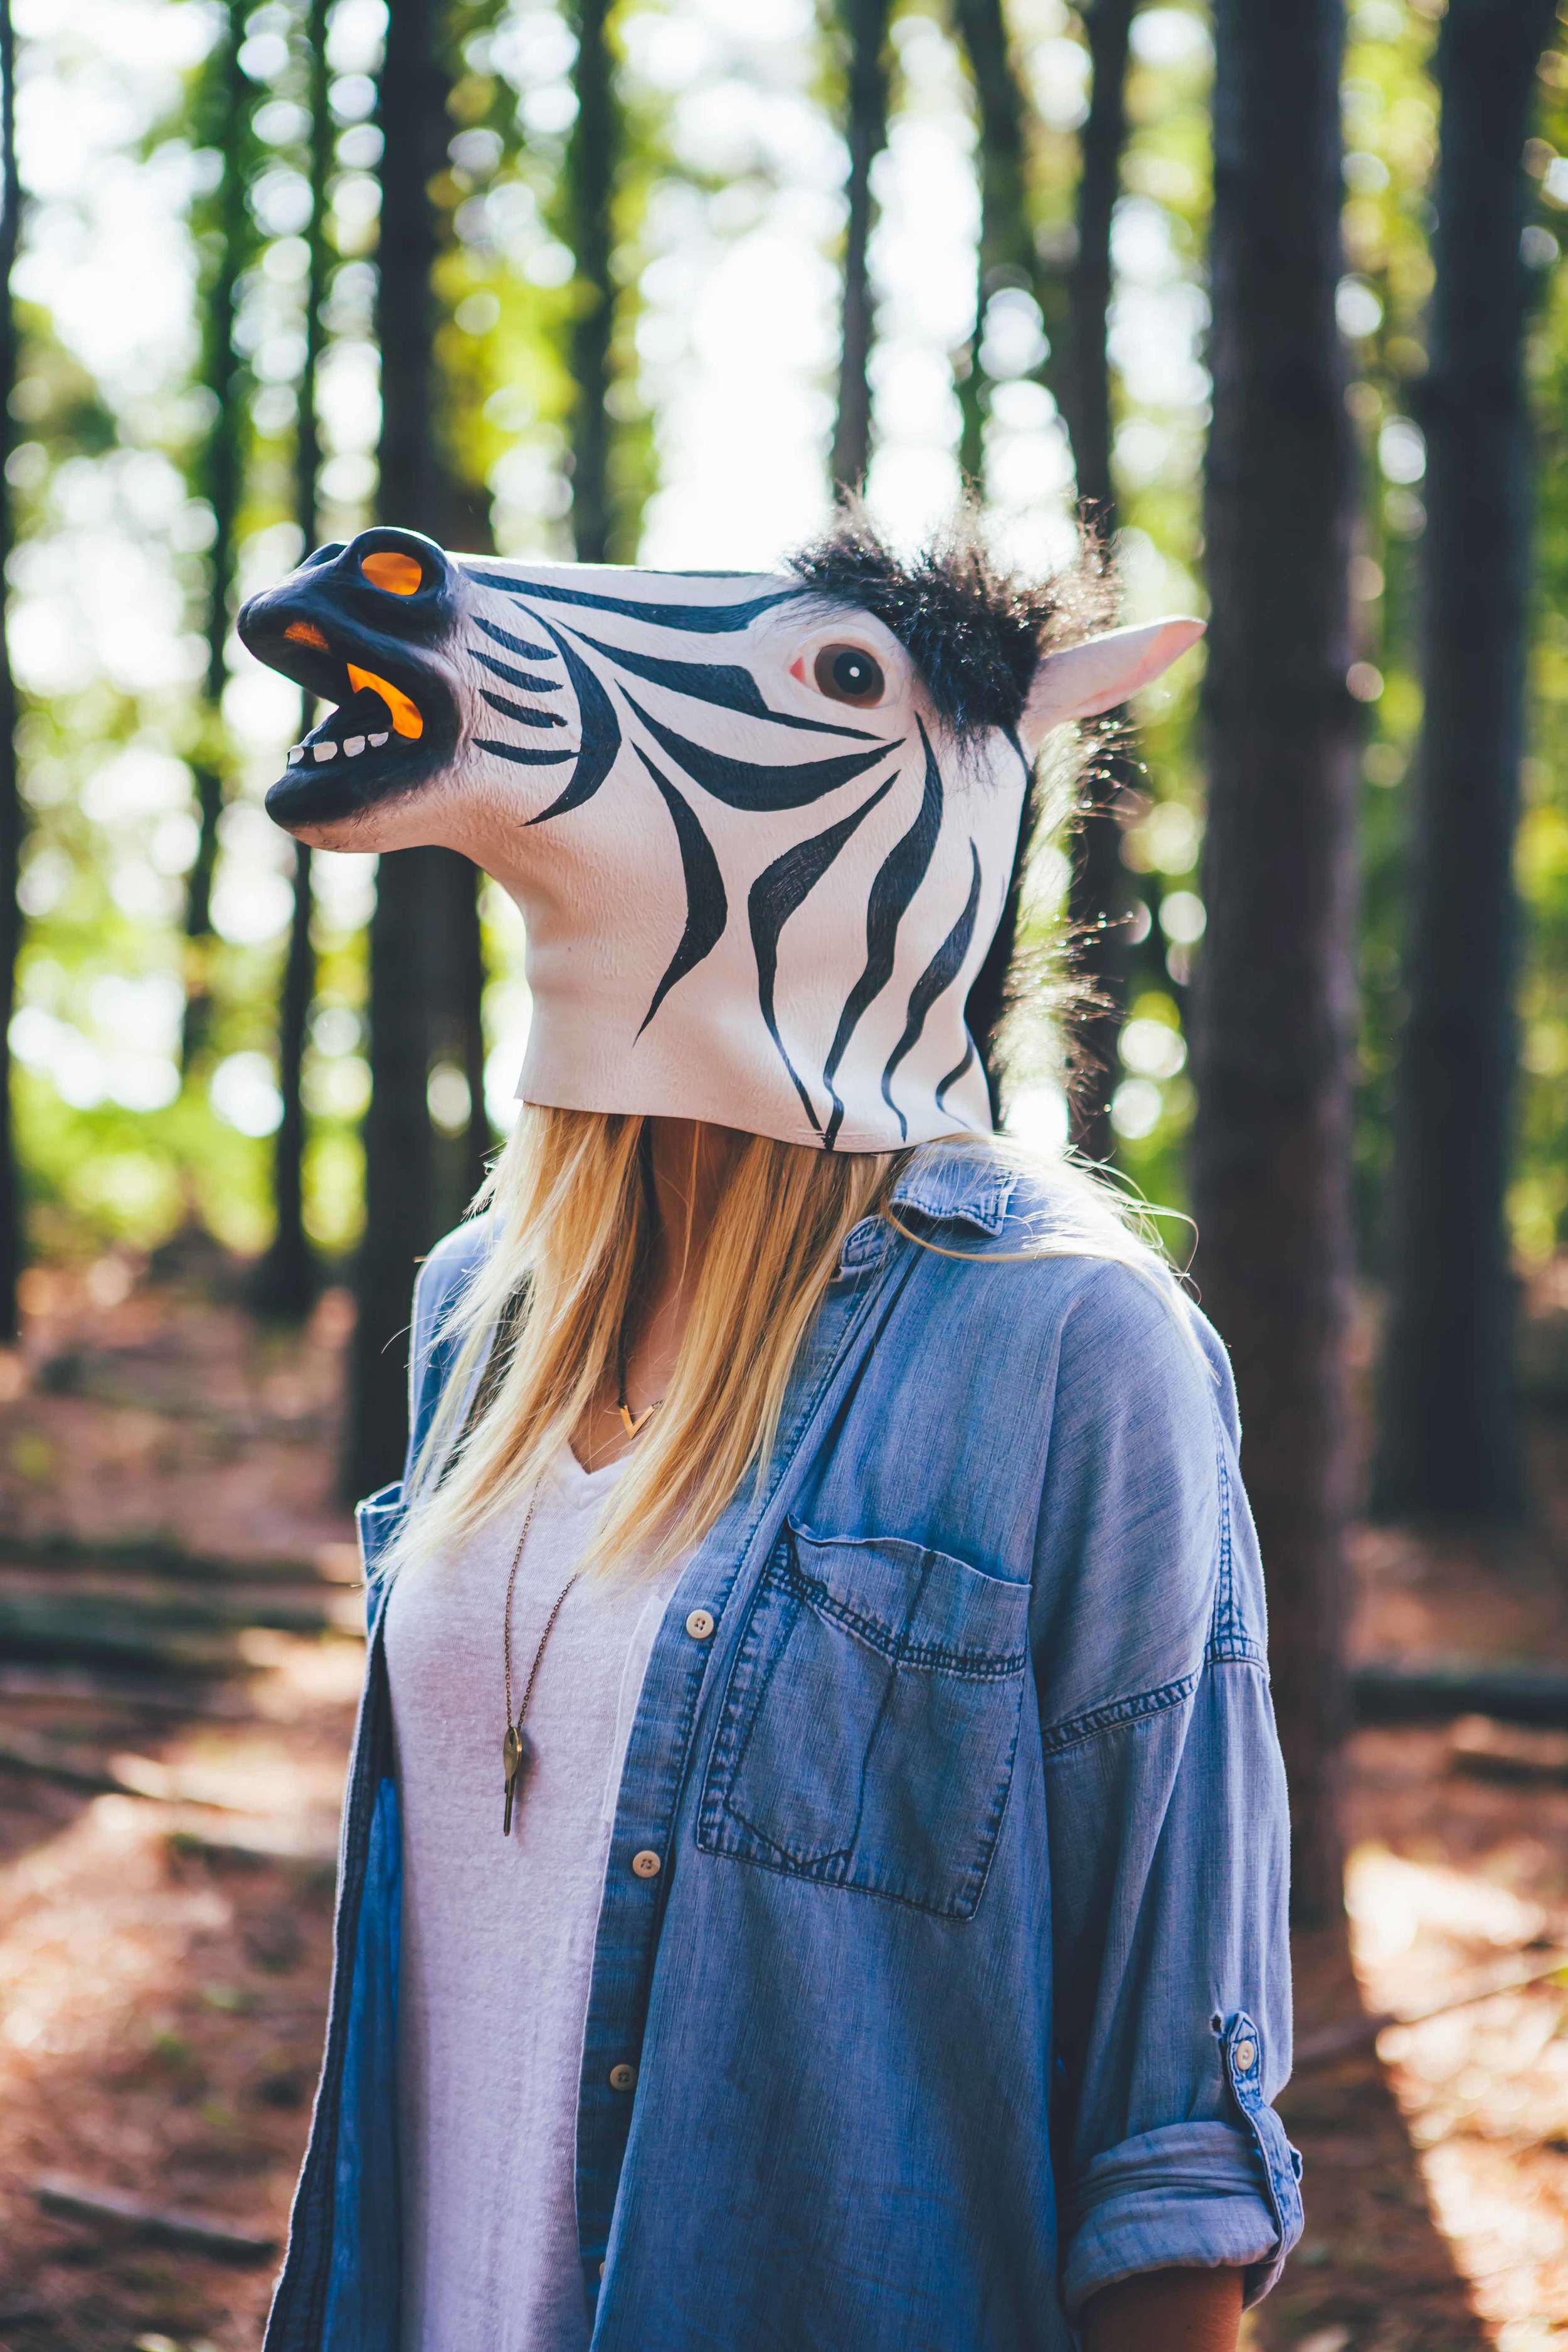 This zebra mask headshot became a team favorite and is used on their printed marketing materials!